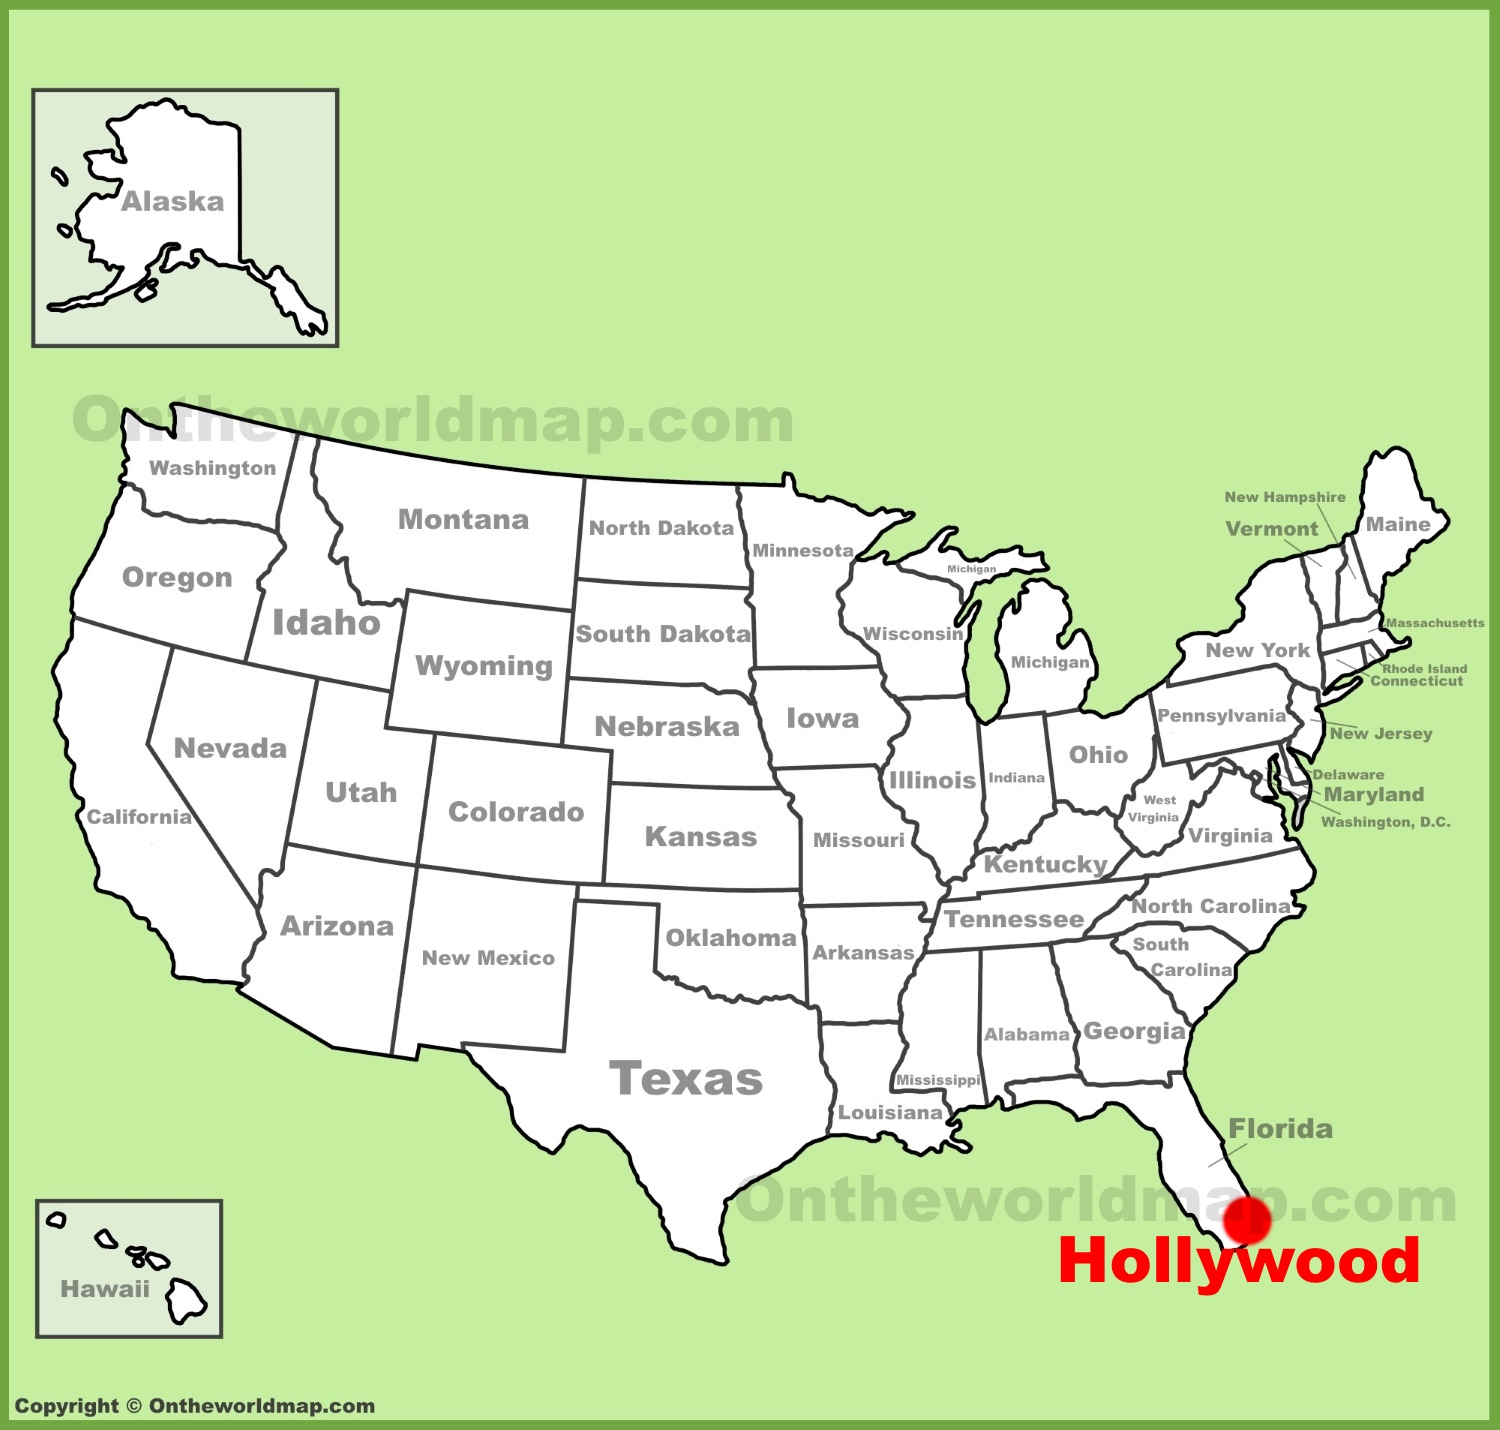 Hollywood Maps Florida US Maps of Hollywood